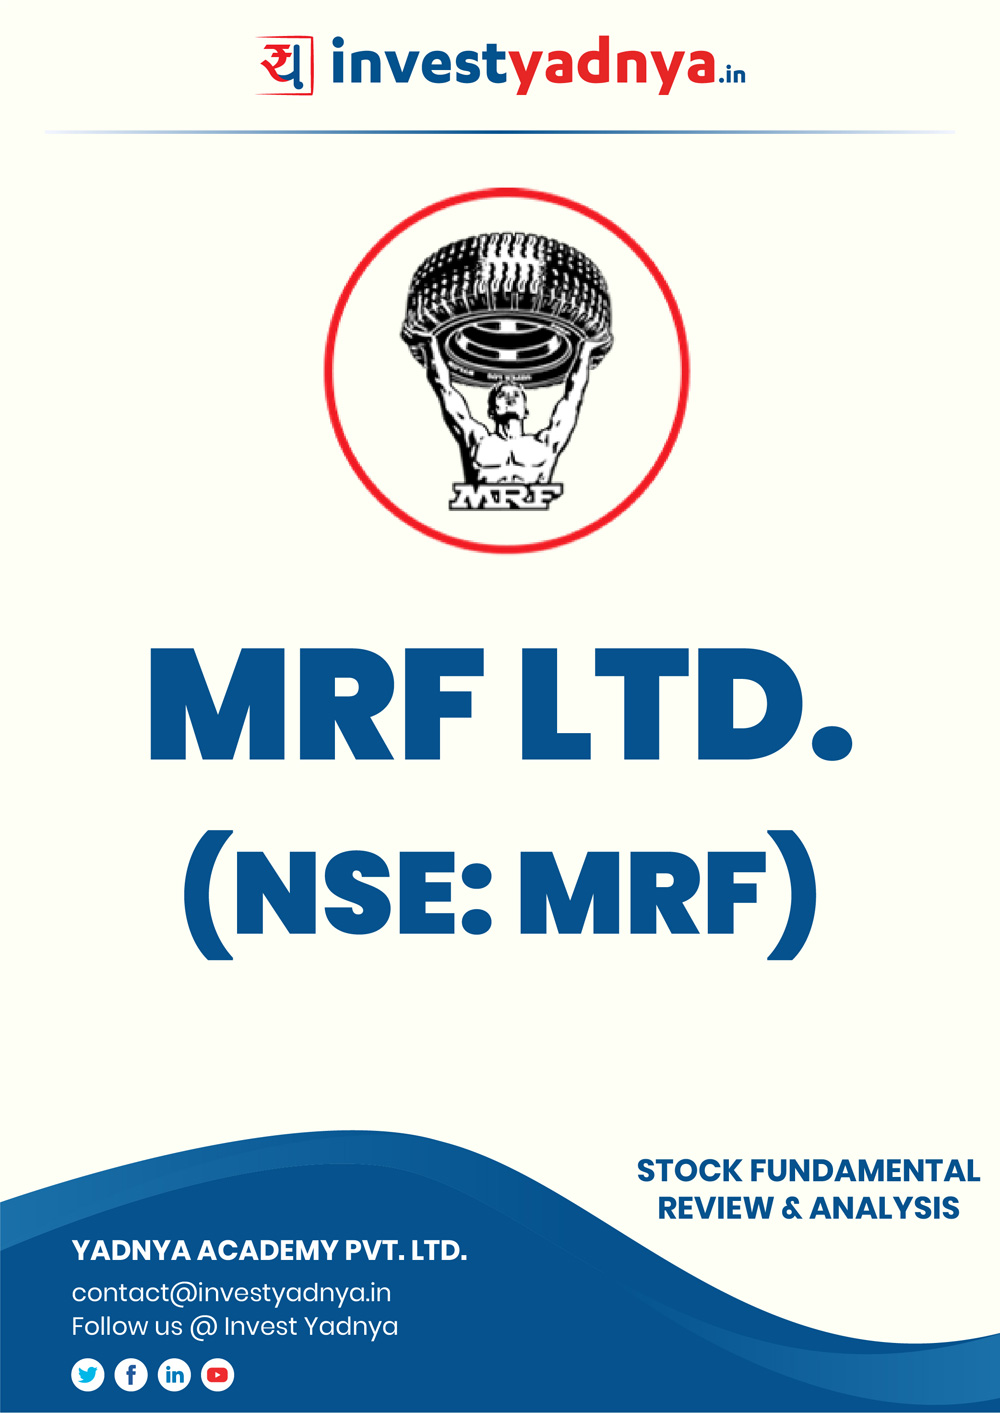 This e-book contains in-depth fundamental analysis of MRF considering both Financial and Equity Research Parameters. It reviews the company, industry competitors, shareholding pattern, financials, and annual performance. ✔ Detailed Research ✔ Quality Reports